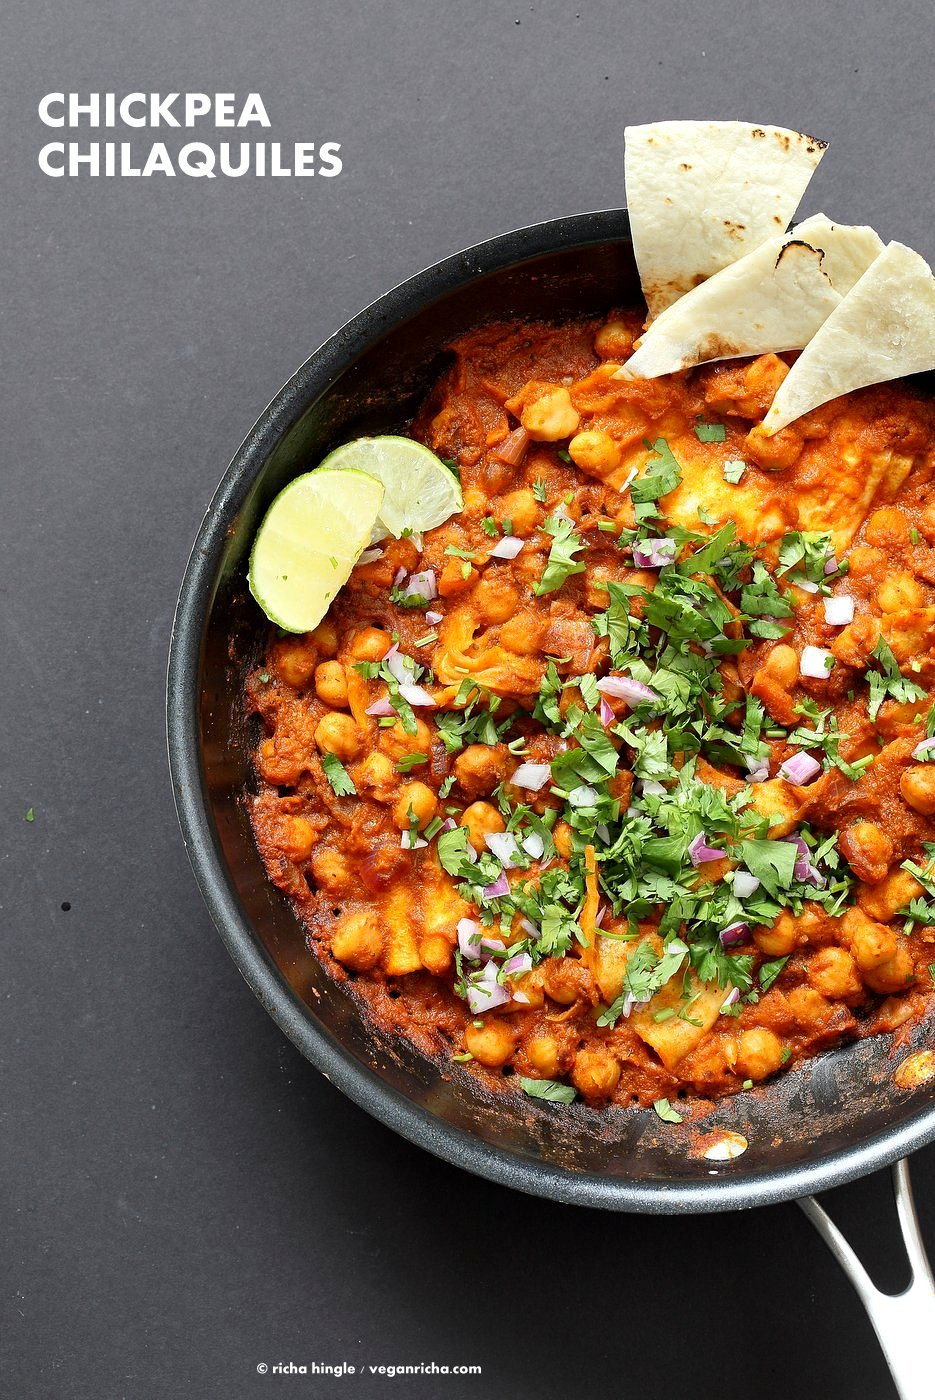 Vegan Chilaquiles with spiced Chickpeas. Spiced Chickpeas and crisped tortilla with easy red sauce. Easy Chilaquiles Recipe. Nut-free, soy-free. can be gluten-free.  VeganRicha.com